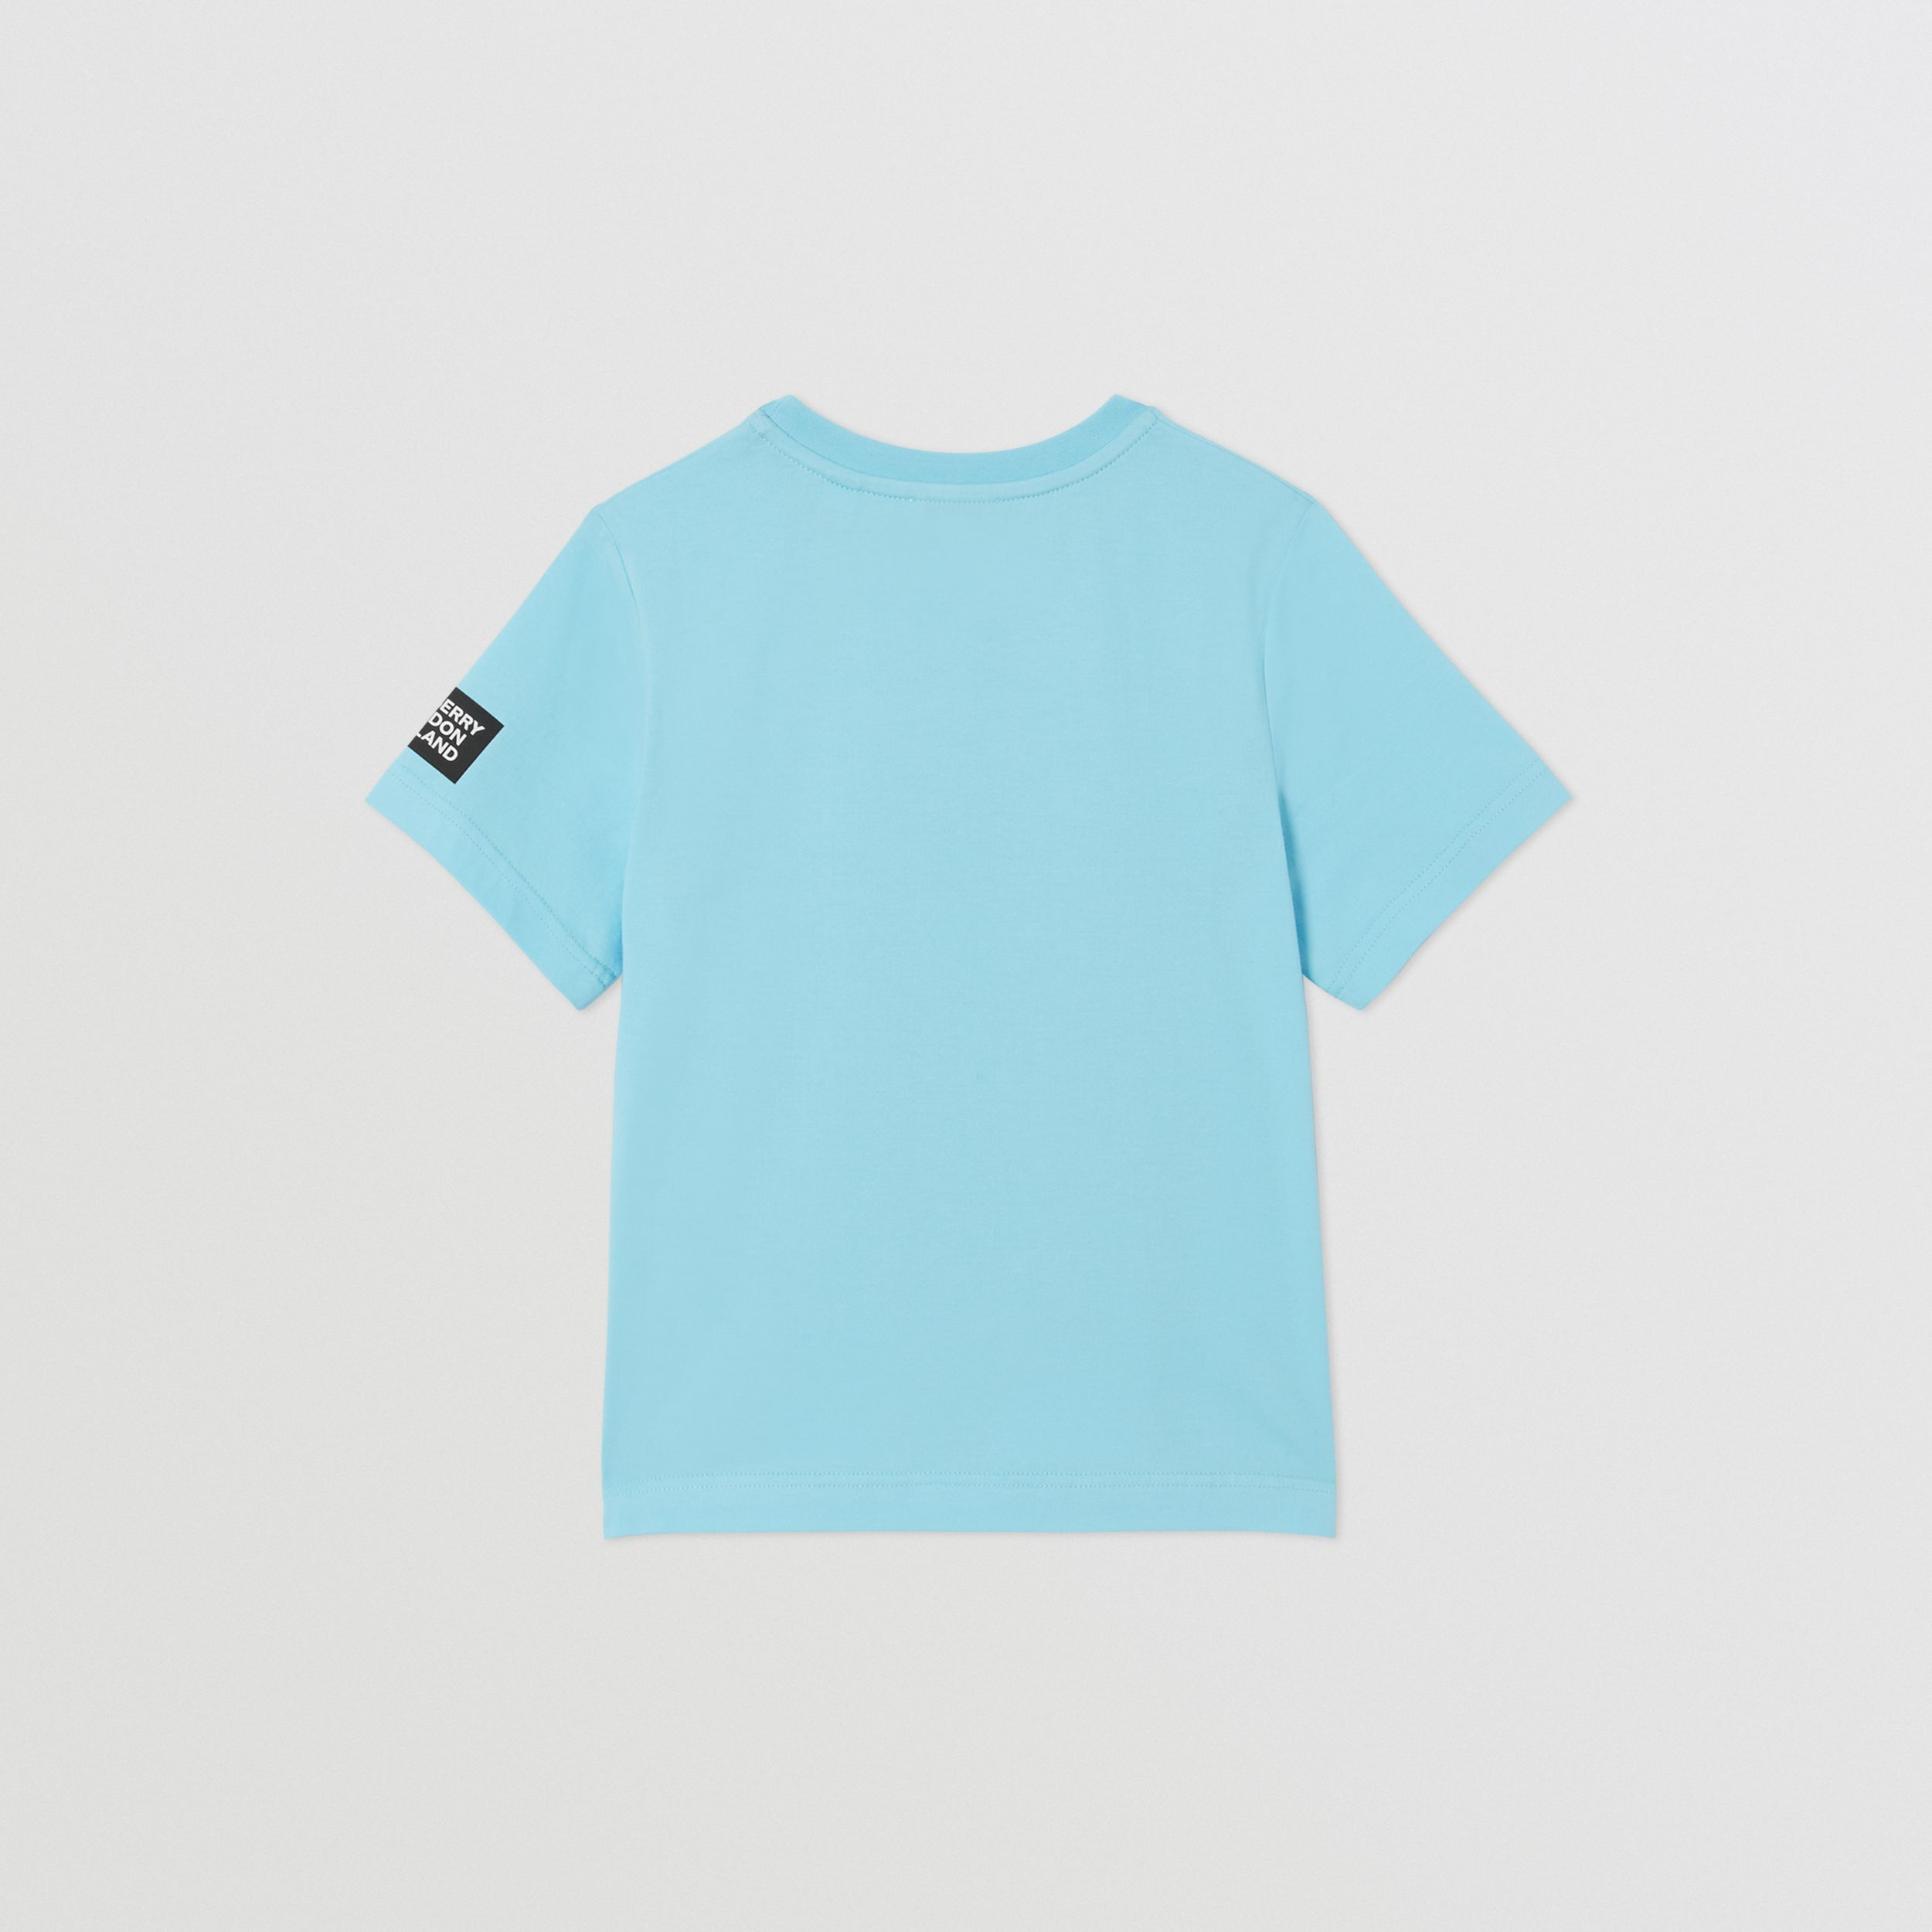 Montage Print Cotton T-shirt in Pale Turquoise | Burberry - 2